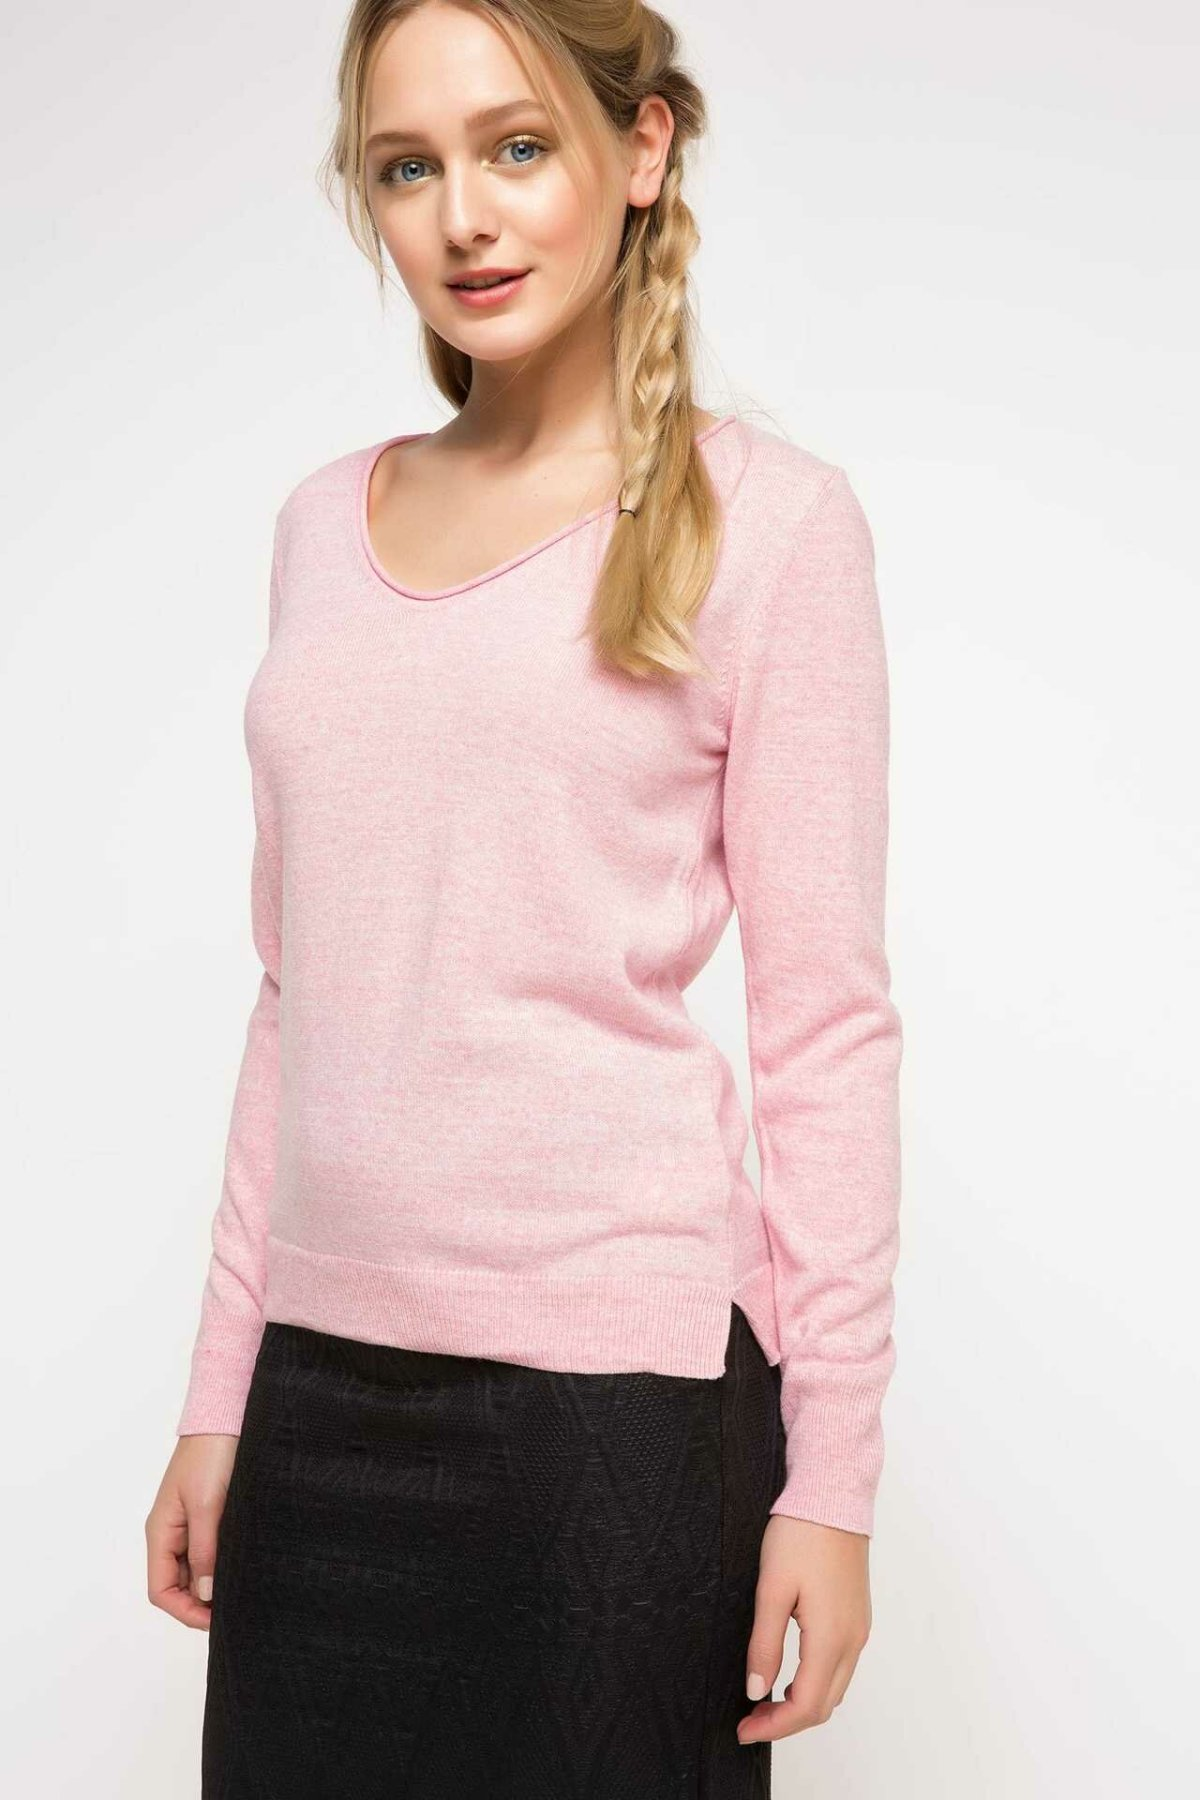 DeFacto V-neck Simple Fashion Solid Women Pullovers Casual Long Sleeves Pullovers Loose Women Autumn New - F6797AZ17AU